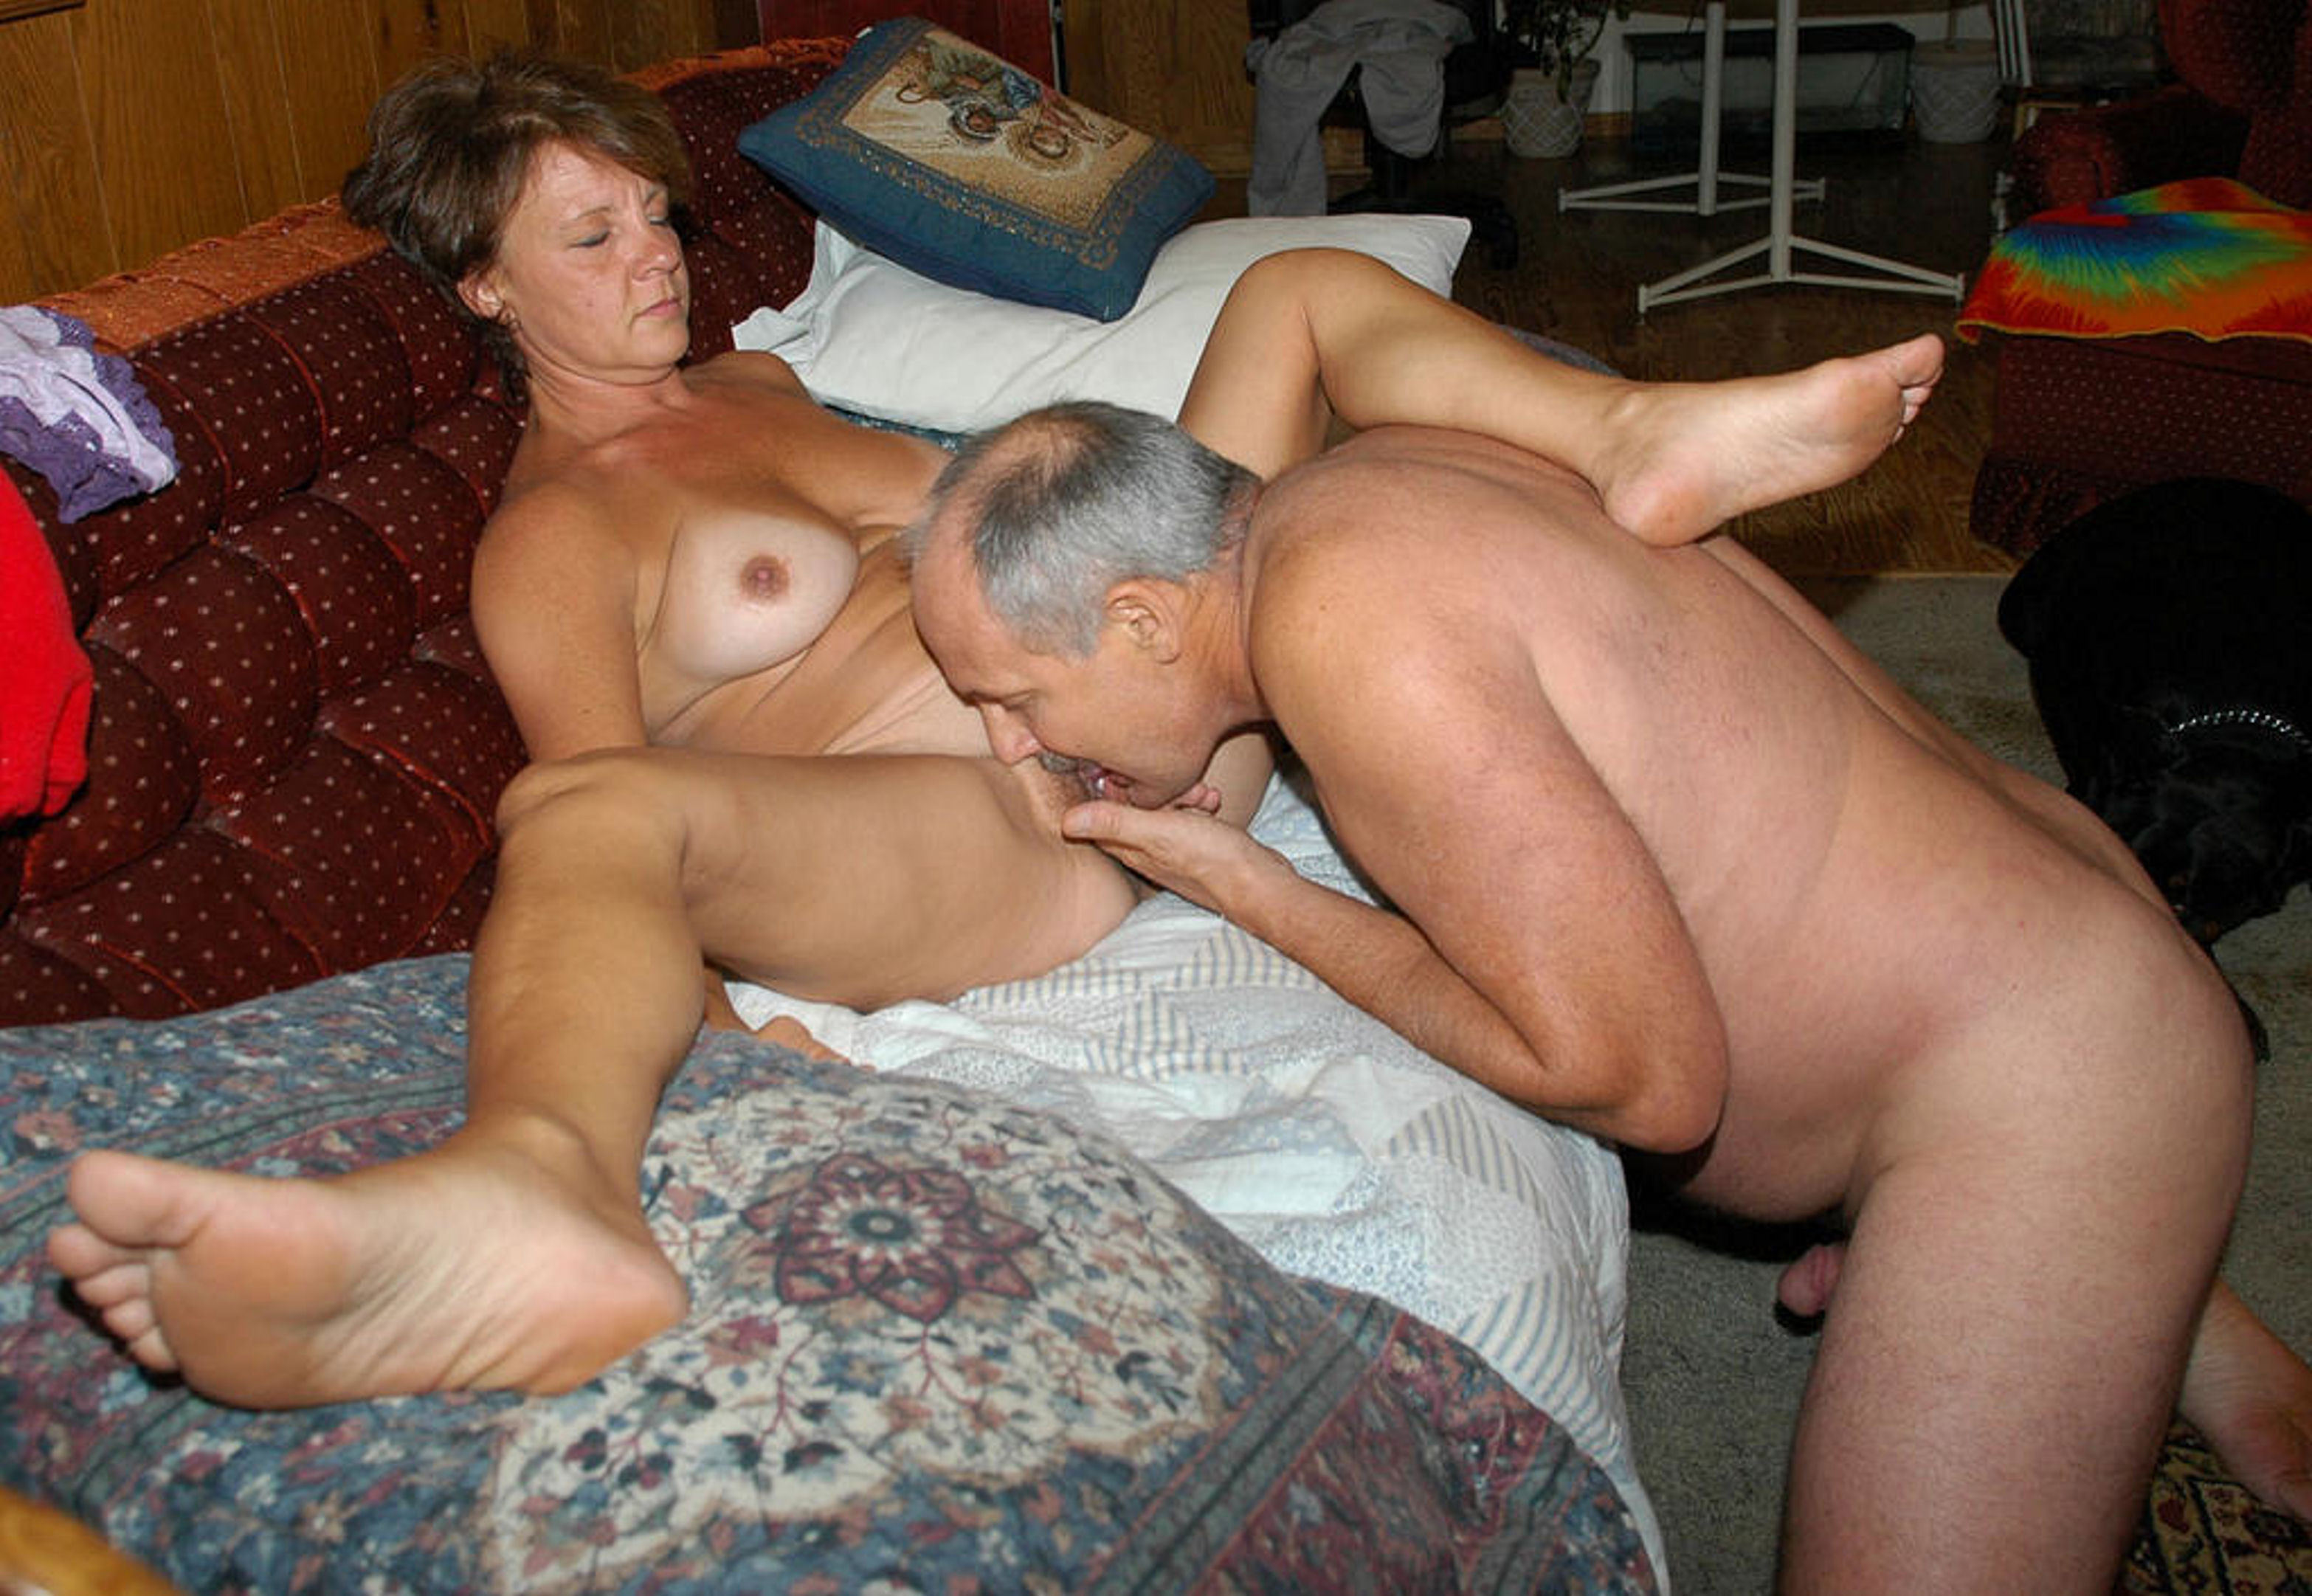 Nude and sex old couples hot photos